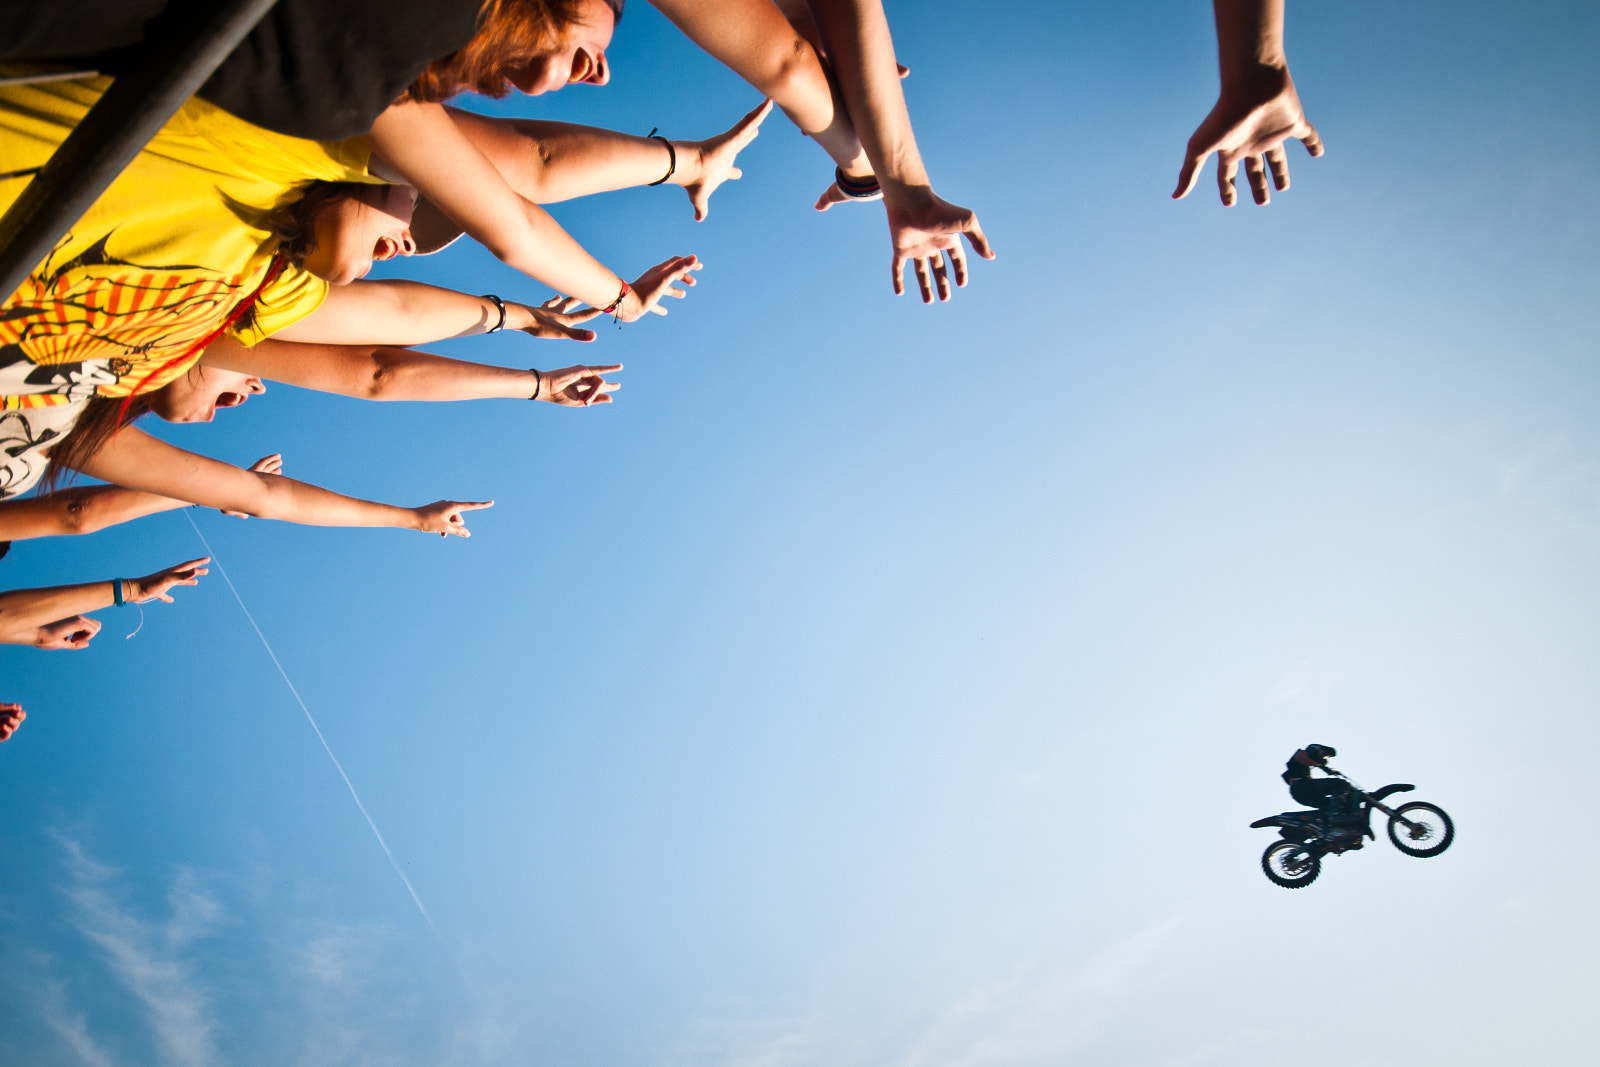 Photograph Horsefeathers FMX Jam 2011 by VOJTa Herout on 500px